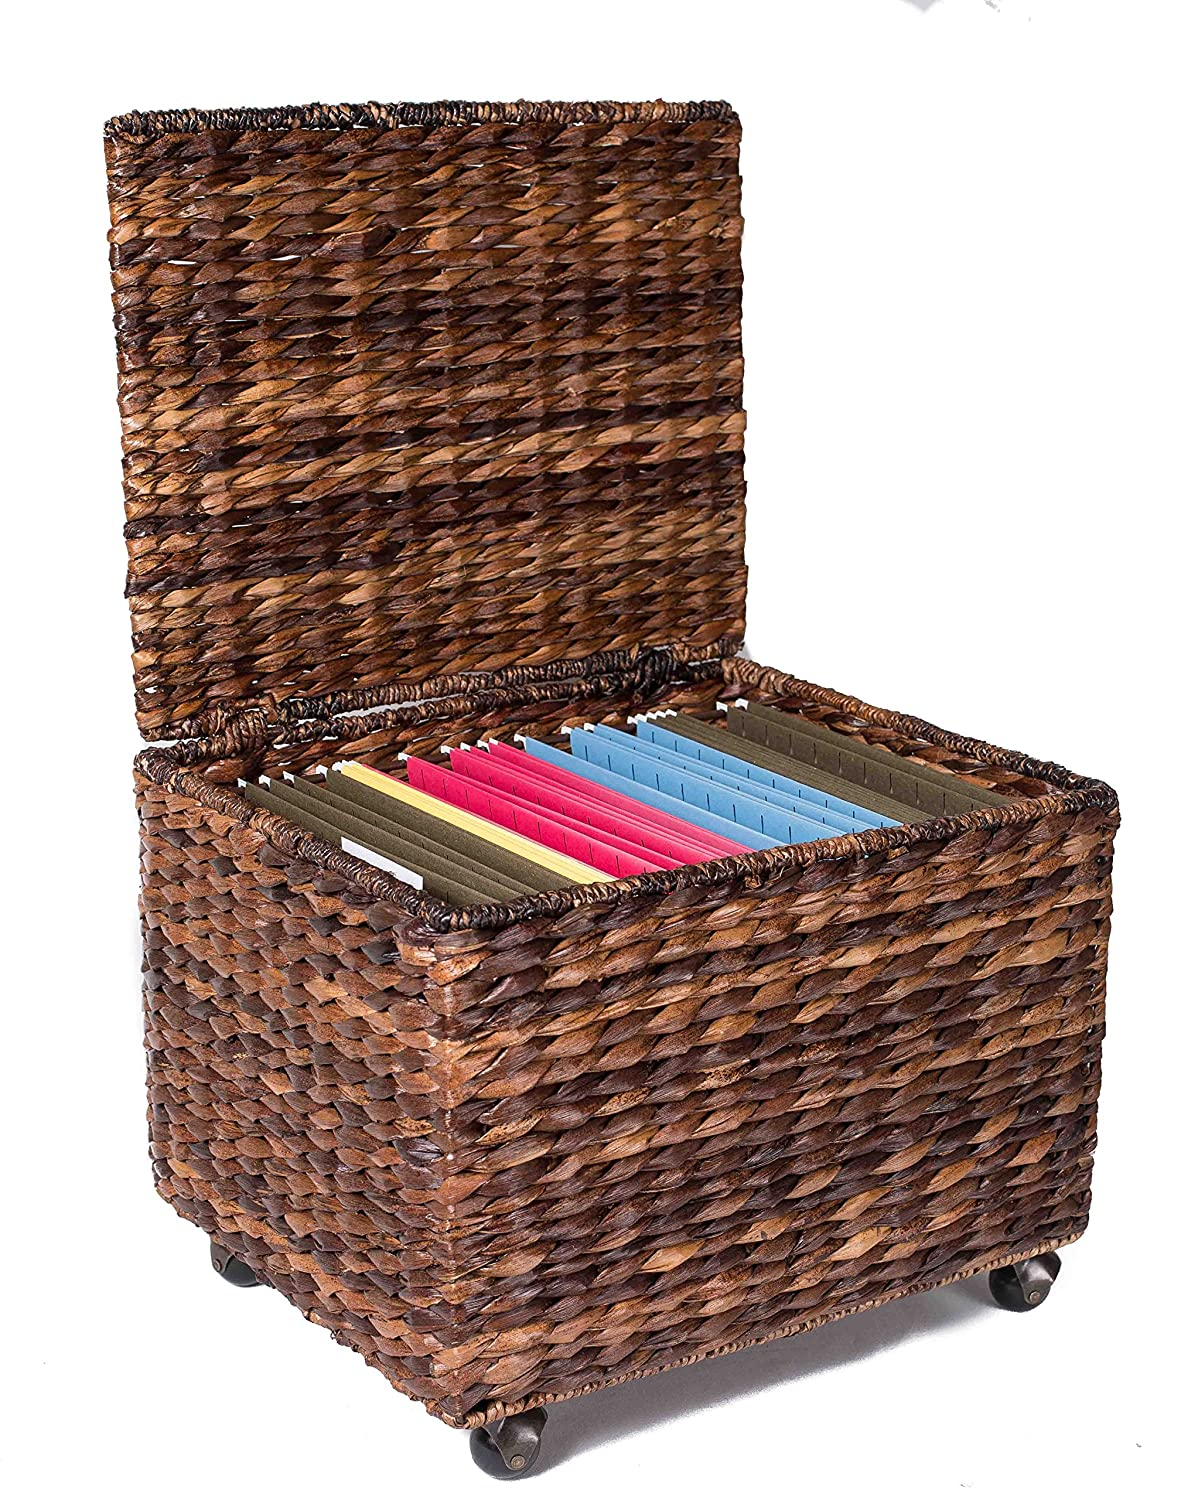 office file racks designs. Amazon.com: BirdRock Home Seagrass Rolling File Cabinet | Storage Office Decor Abaca Espresso: Kitchen \u0026 Dining Racks Designs C